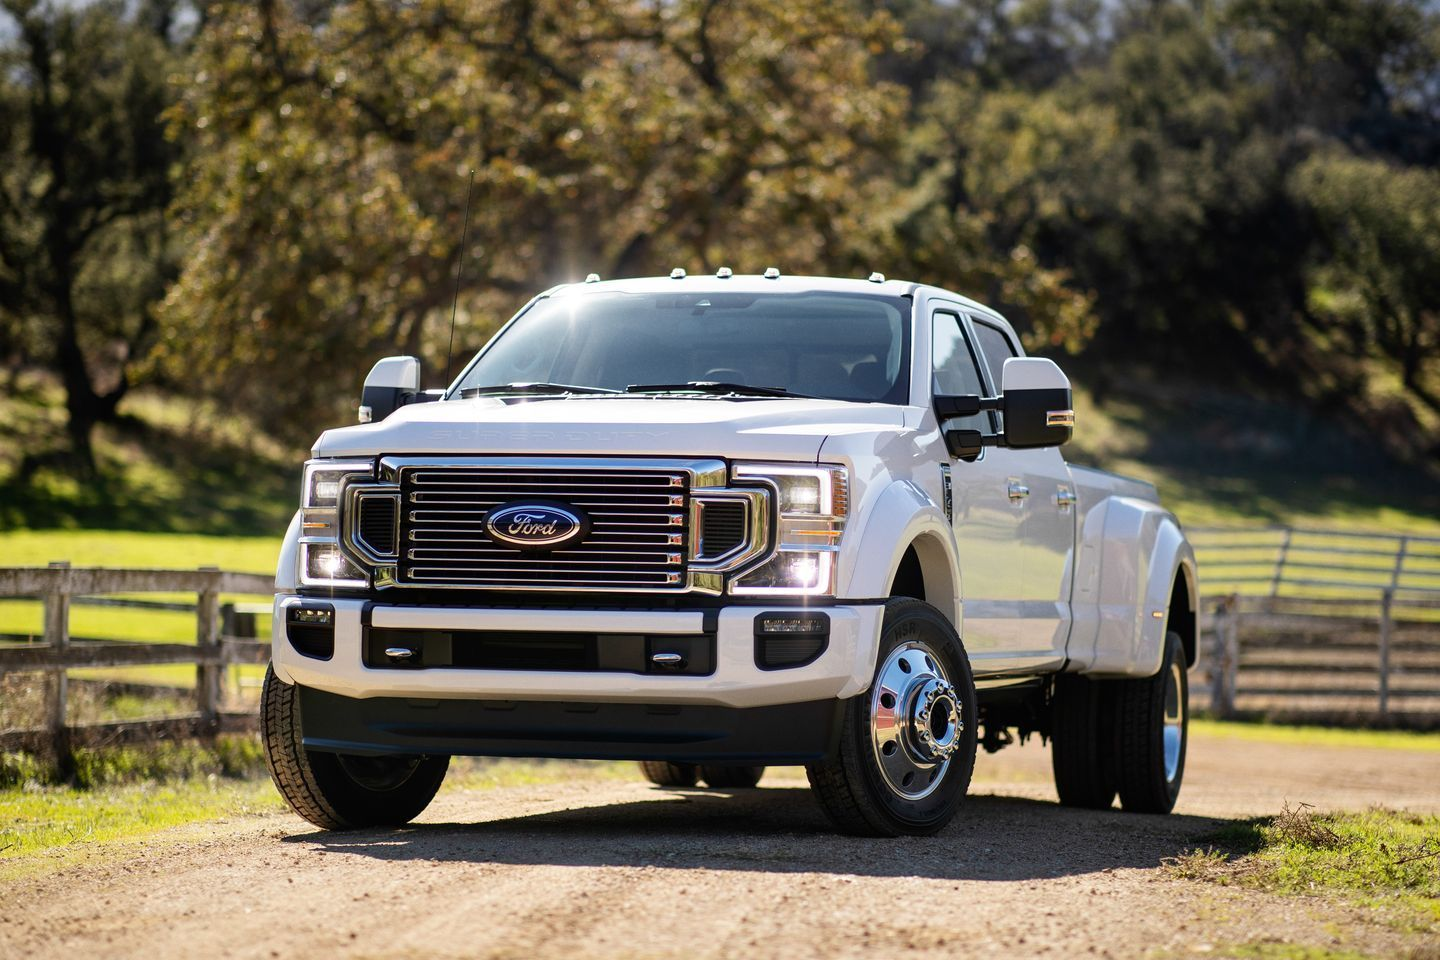 View Photos Of The 2020 Ford Super Duty Ford Super Duty Ford F350 Diesel Ford F Series